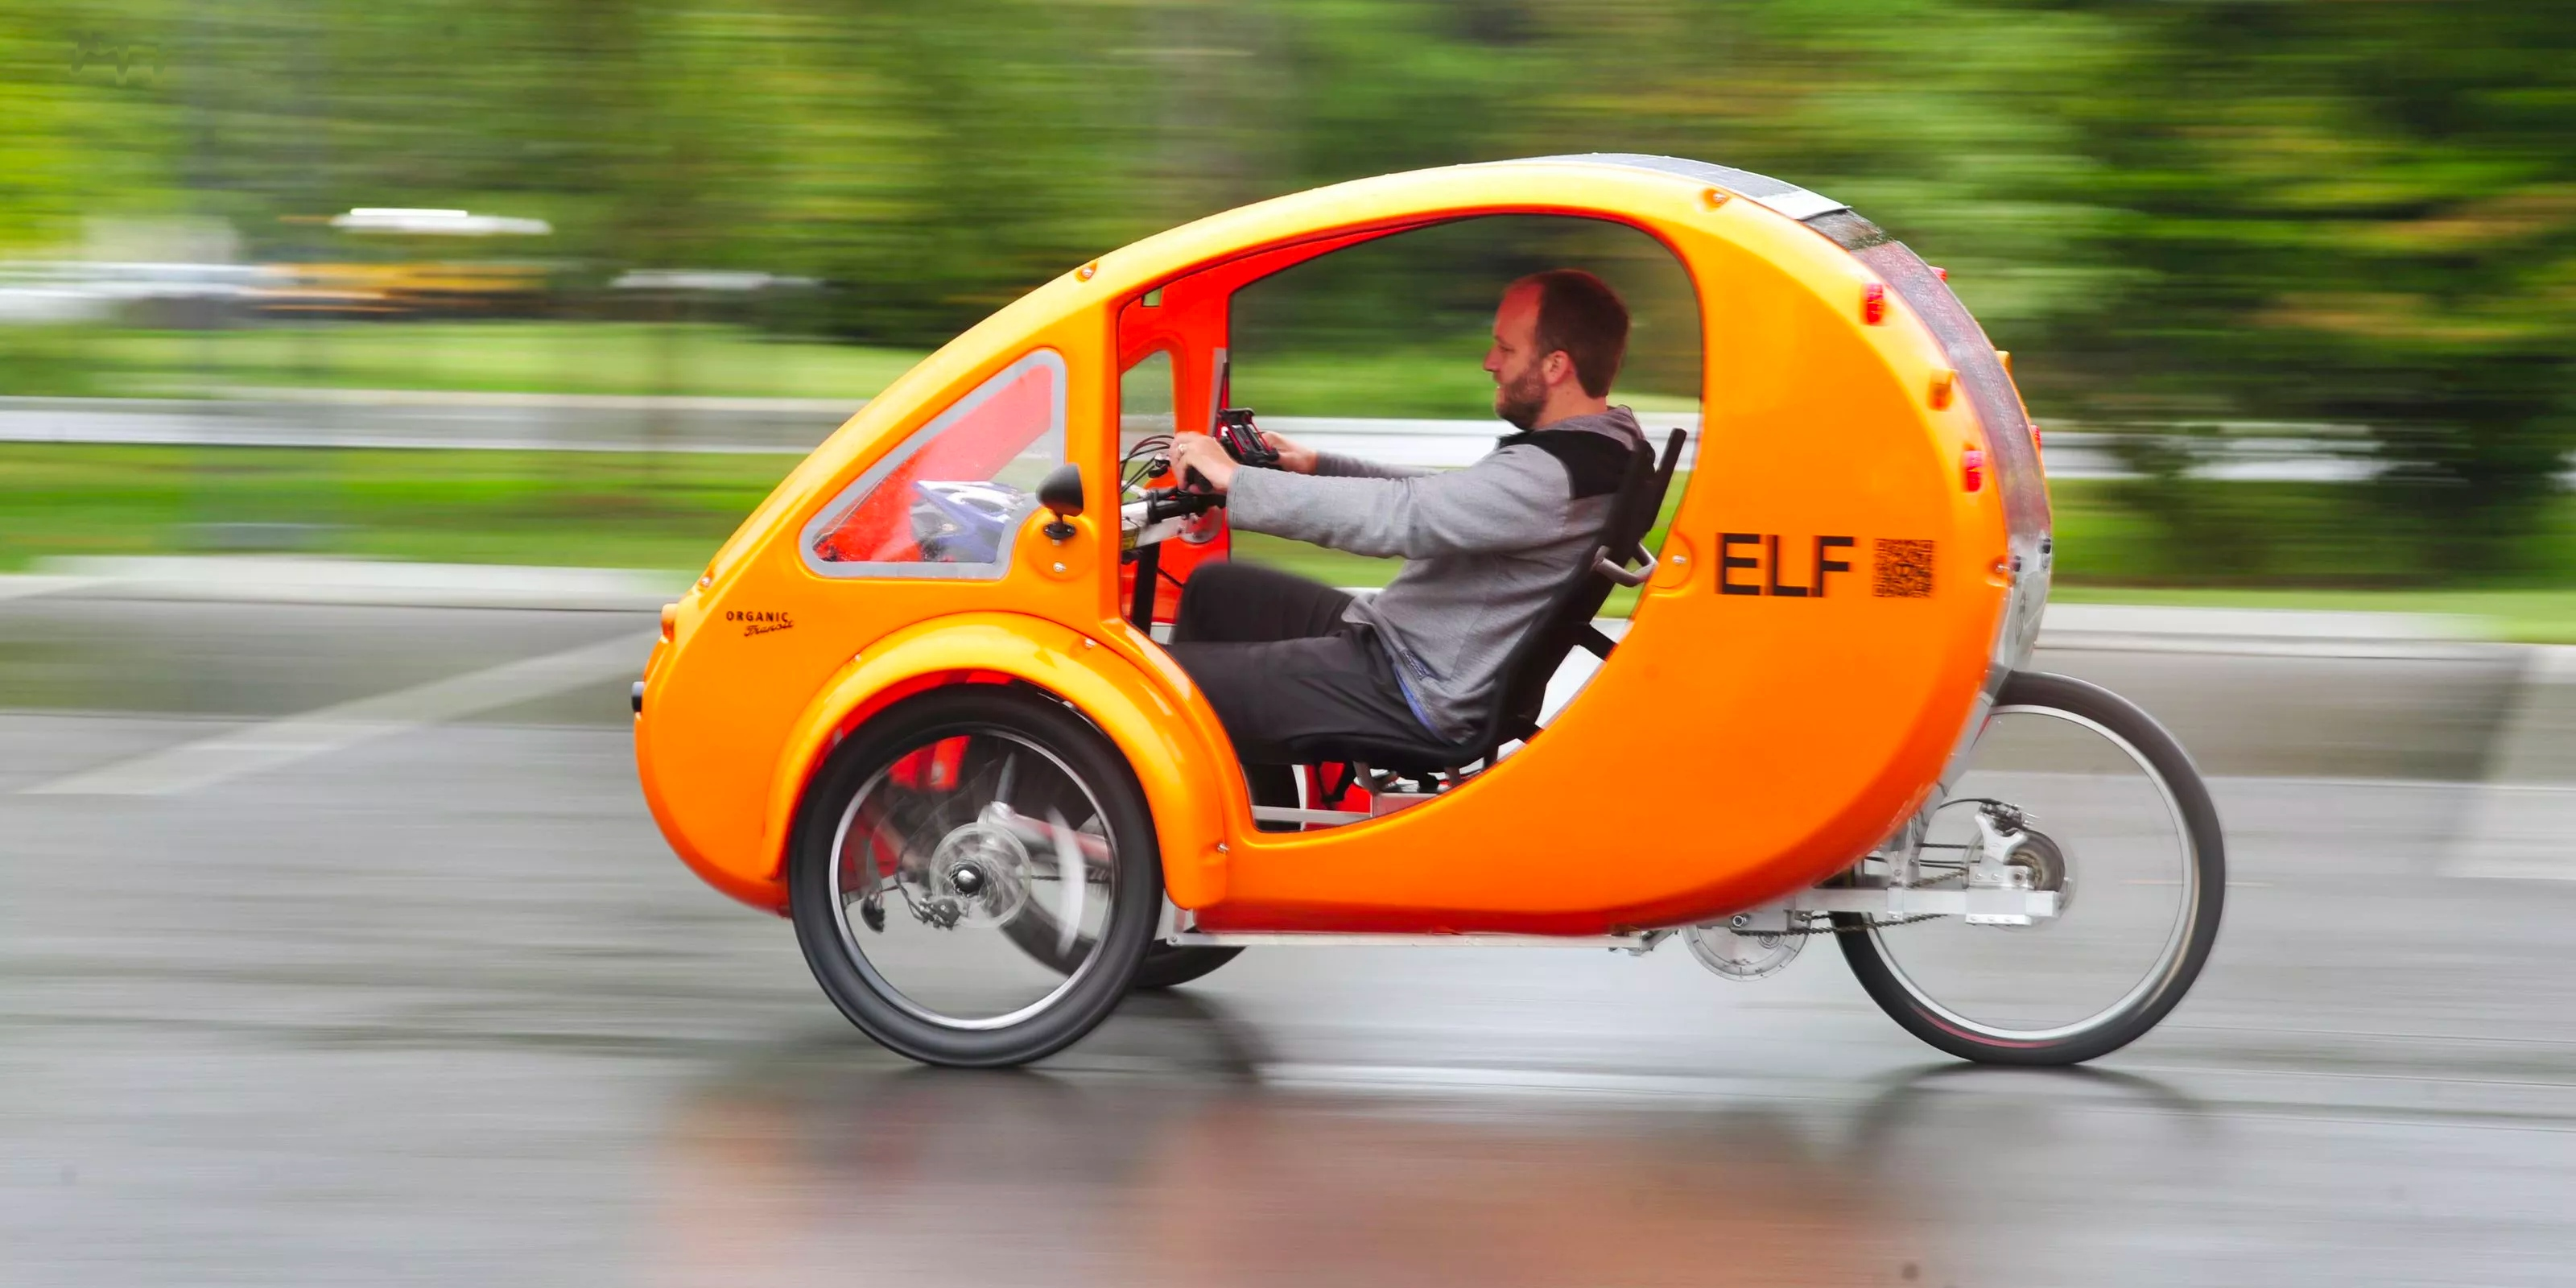 Solar Powered Electric Bike Cars Elf And Pebl Might Just Be Weird